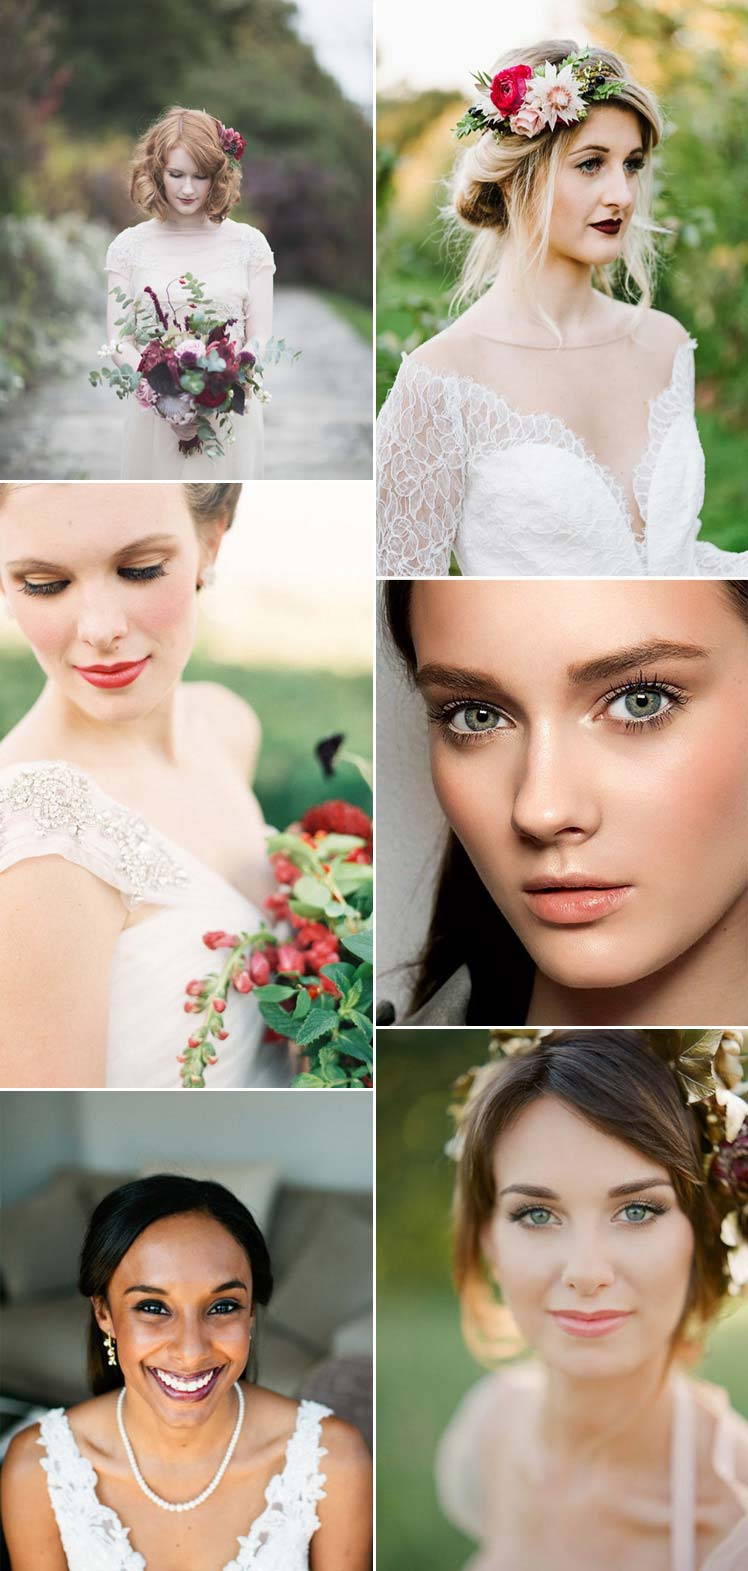 Wedding day make-up inspiration for Autumn brides